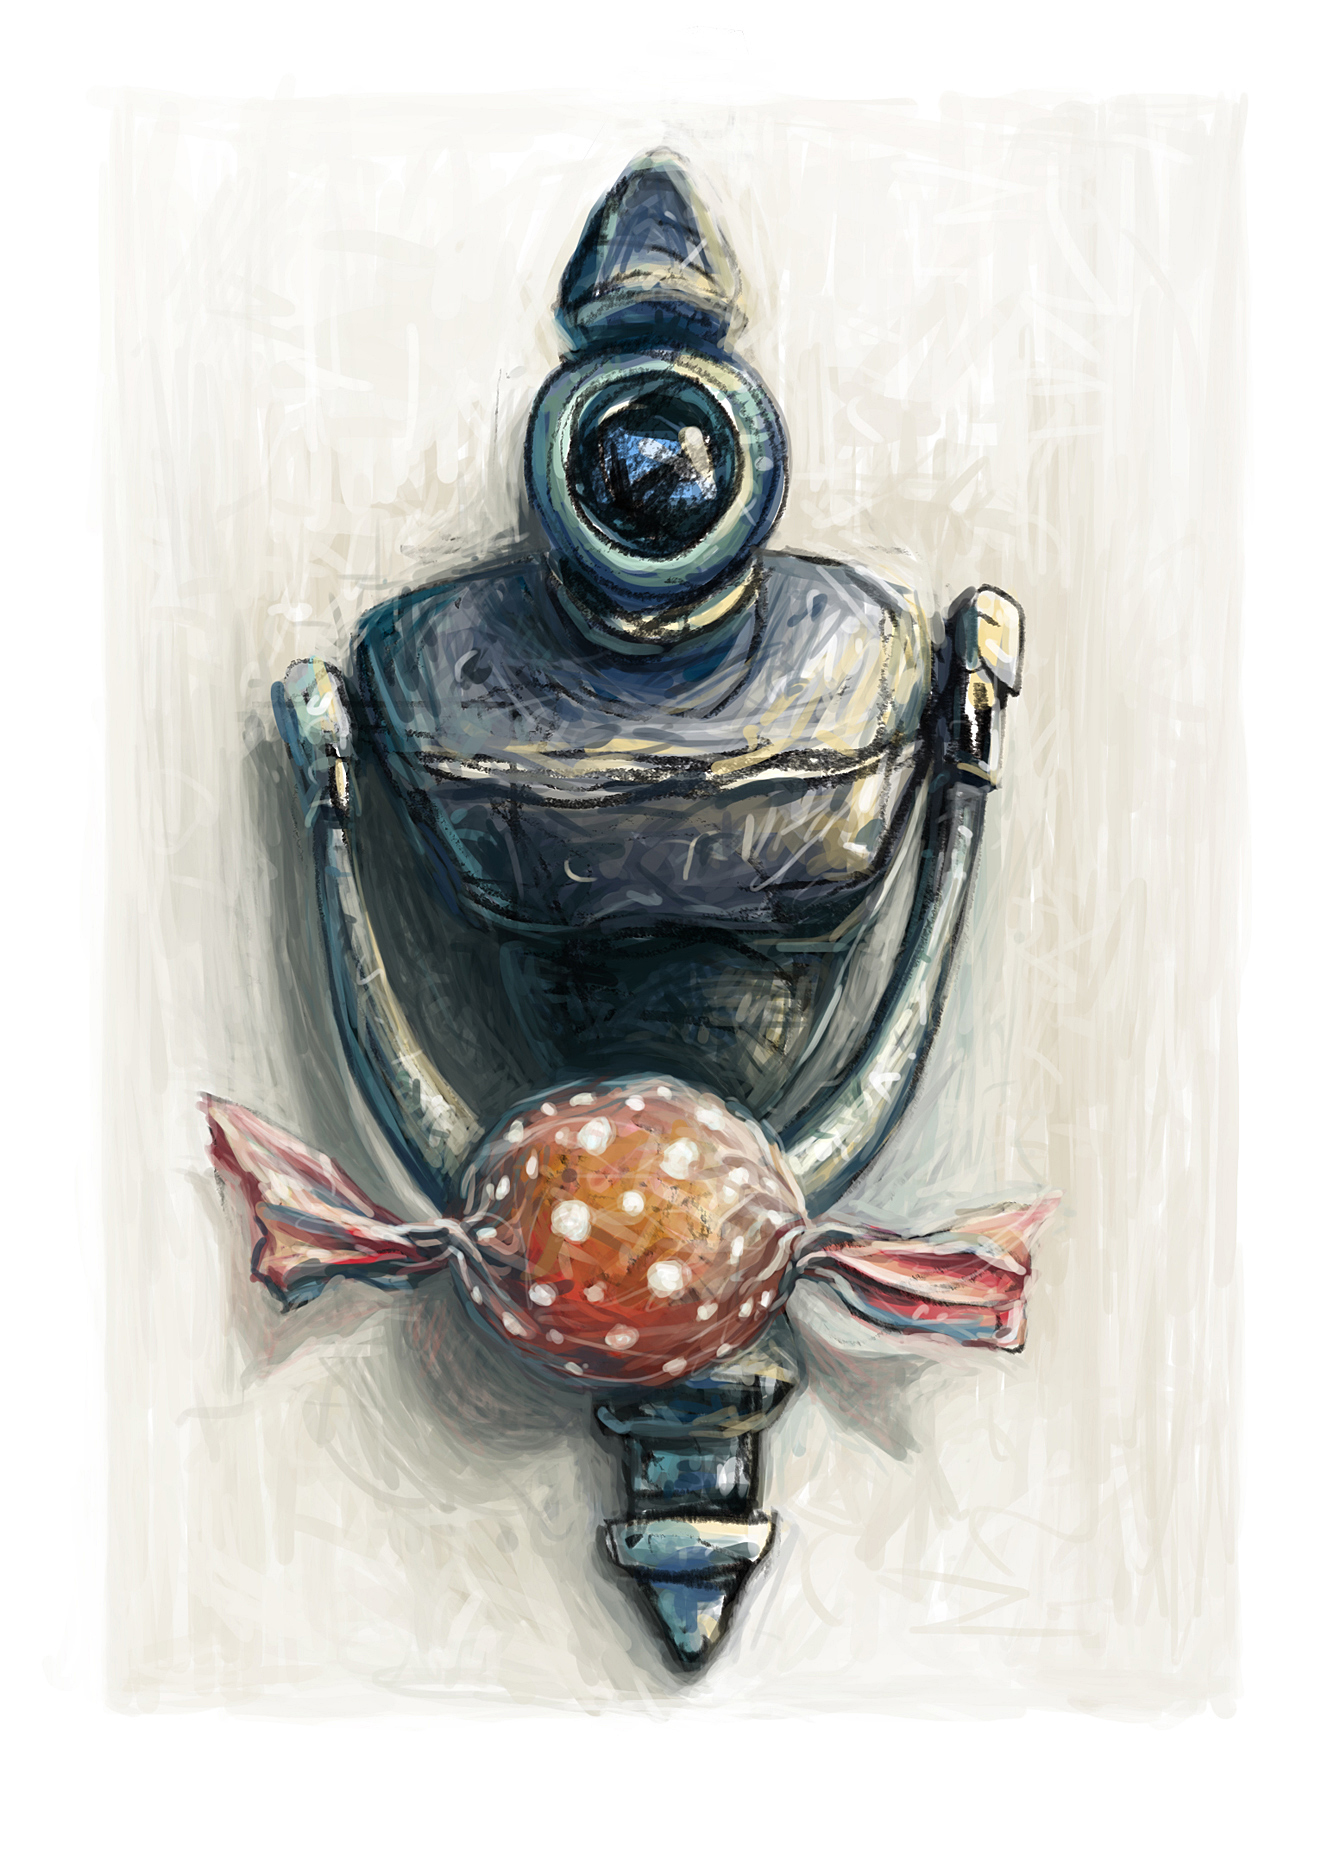 Turtle Door Knocker My Door Knocker Chih Illustration